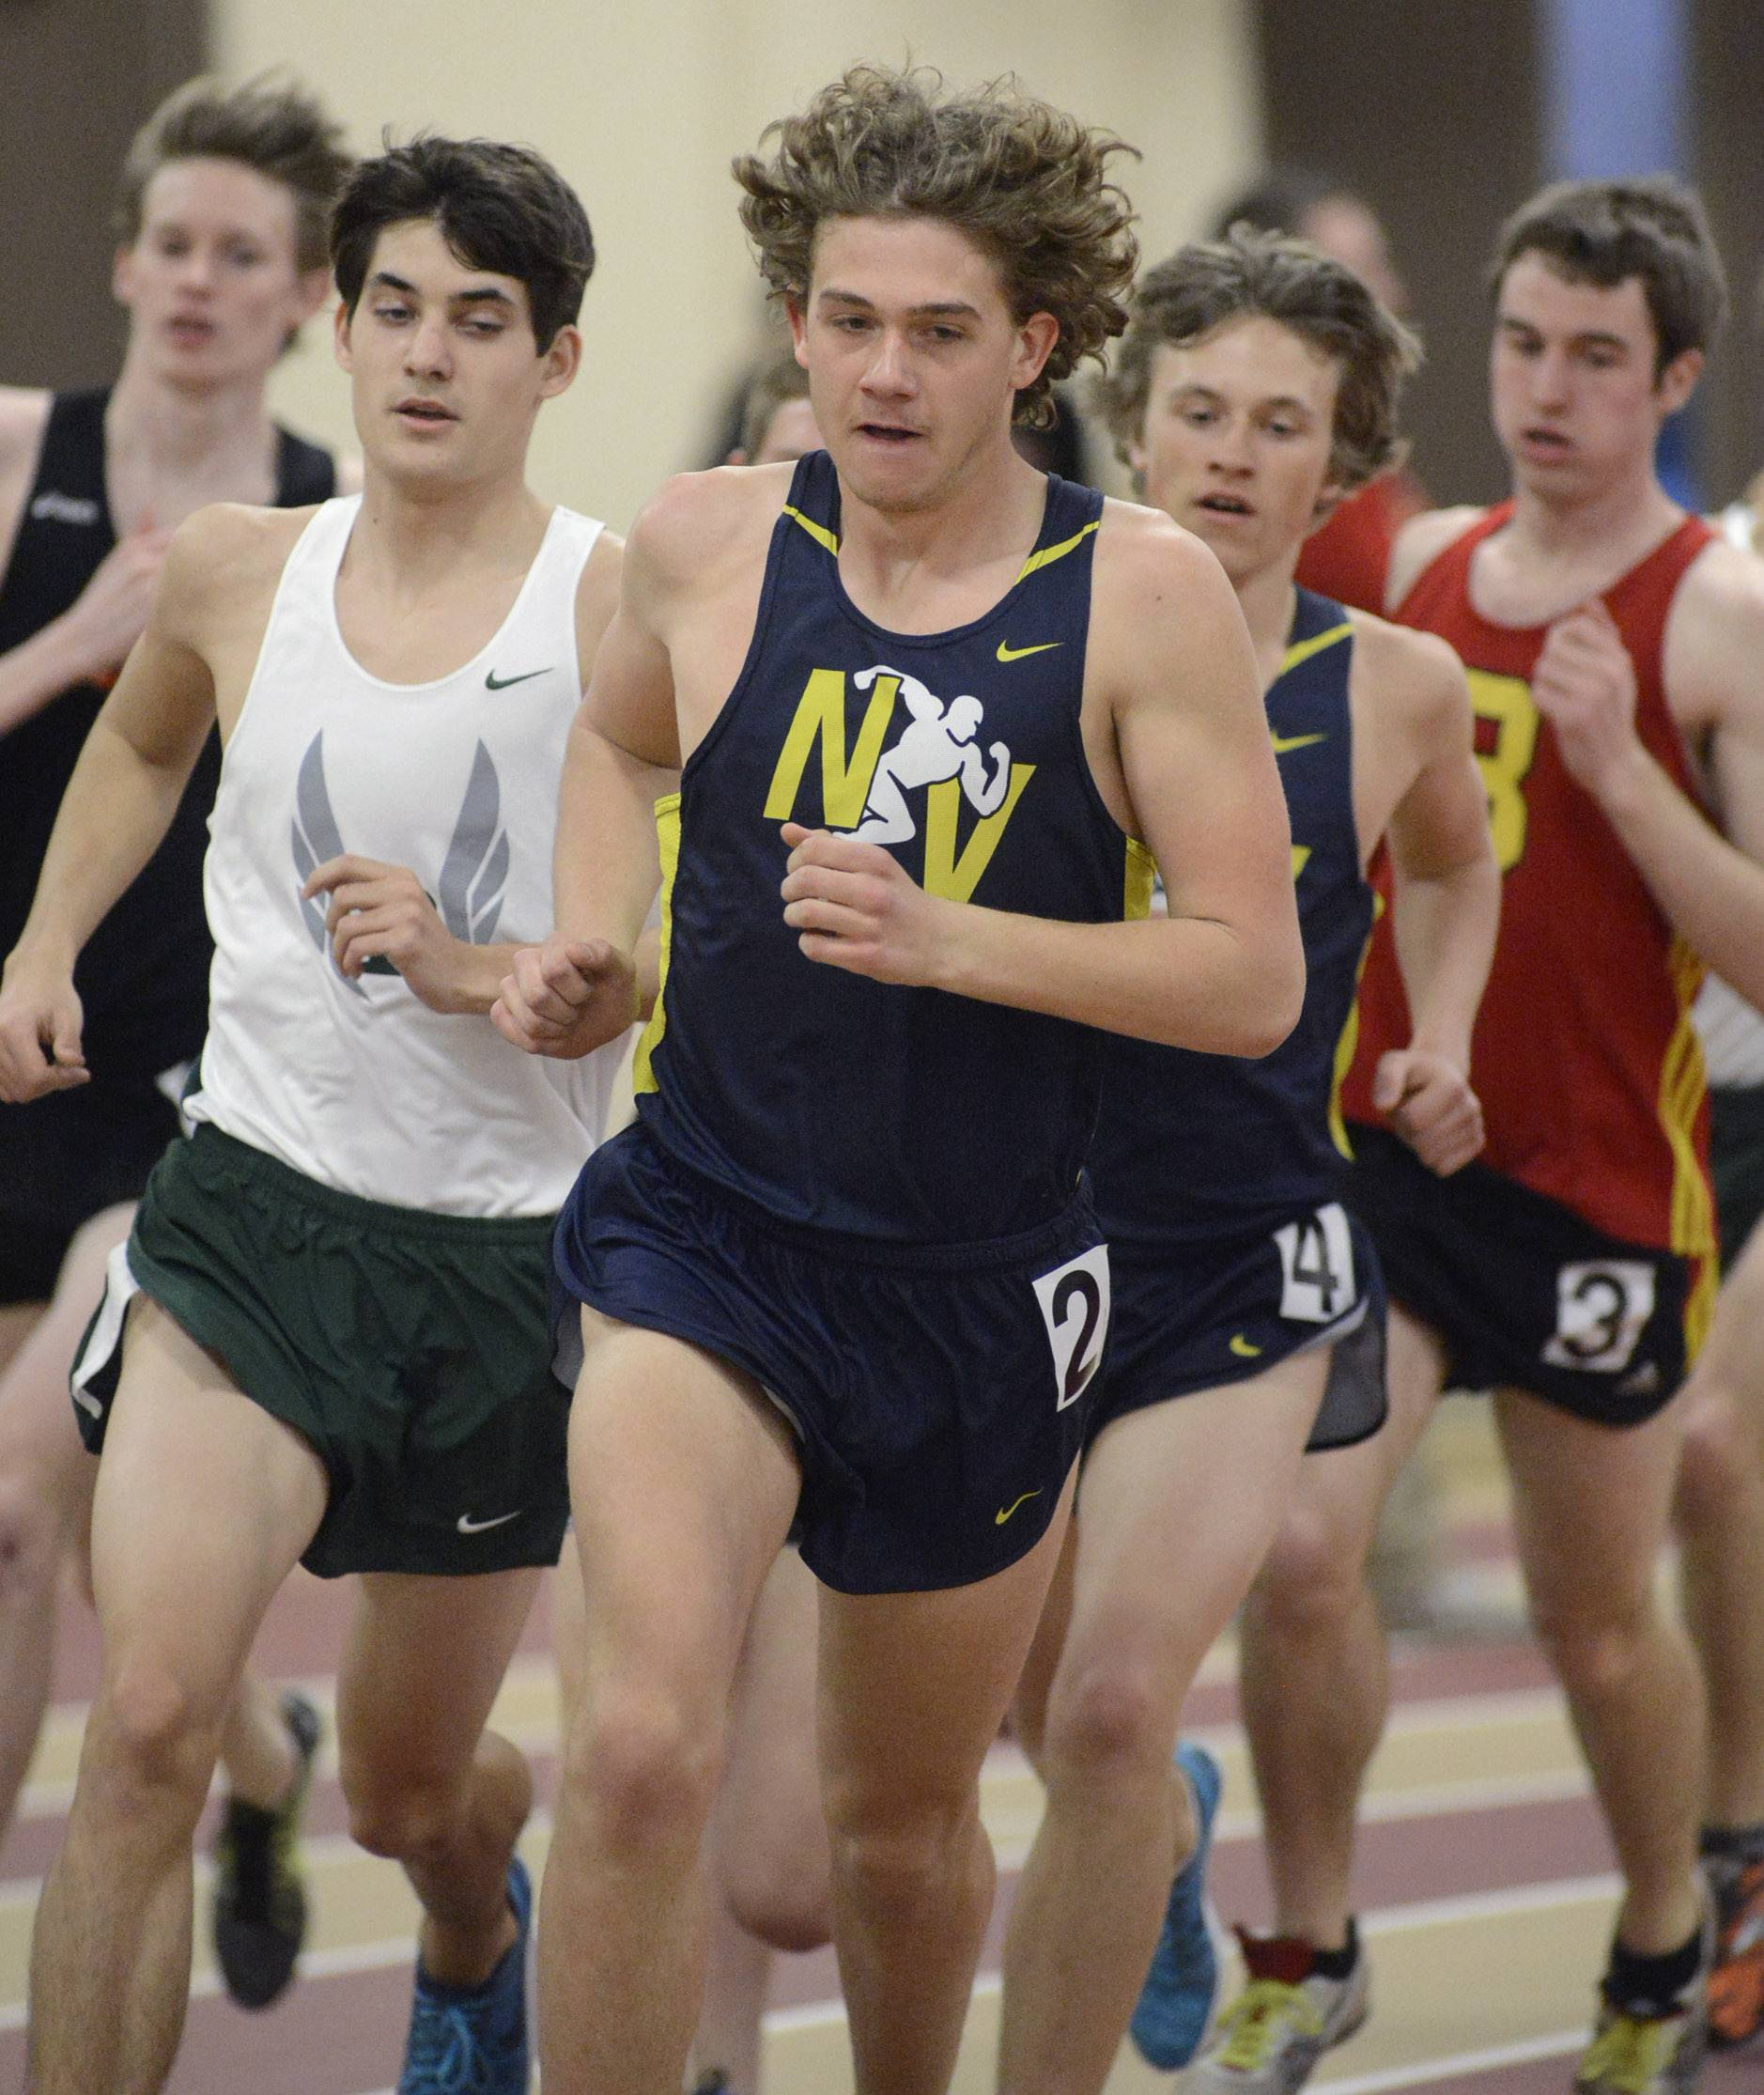 Laura Stoecker/lstoecker@dailyherald.comNeuqua Valley's Nick Bushelle leads the 3200 meter run with Bartlett's Dan Cotton trailing him (left) the whole race at the Upstate Eight Conference in Batavia on Friday, March 21.